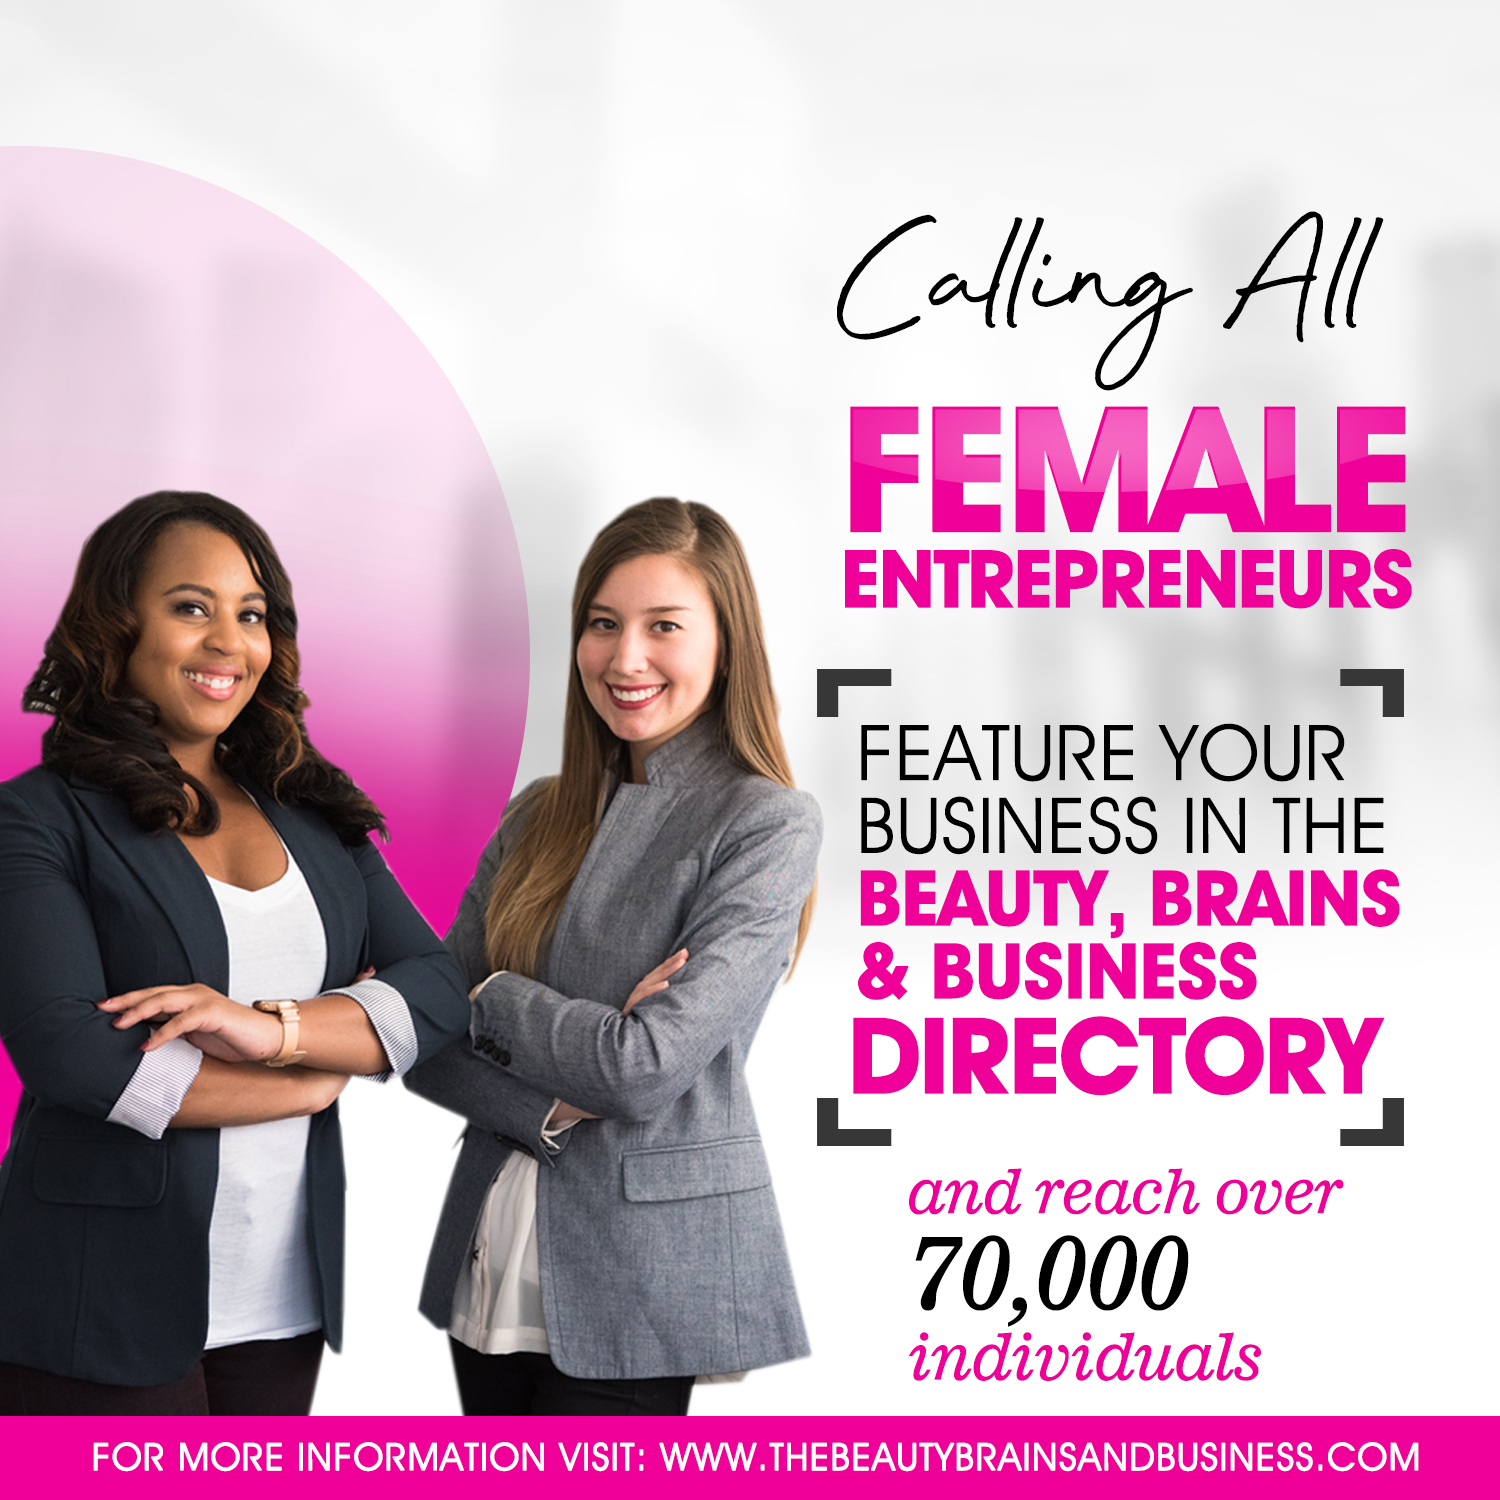 Join the Beauty, Brains & Business Network and become one of the first female entrepreneurs to be featured on our online directory this coming September! Click the link below for details about membership!